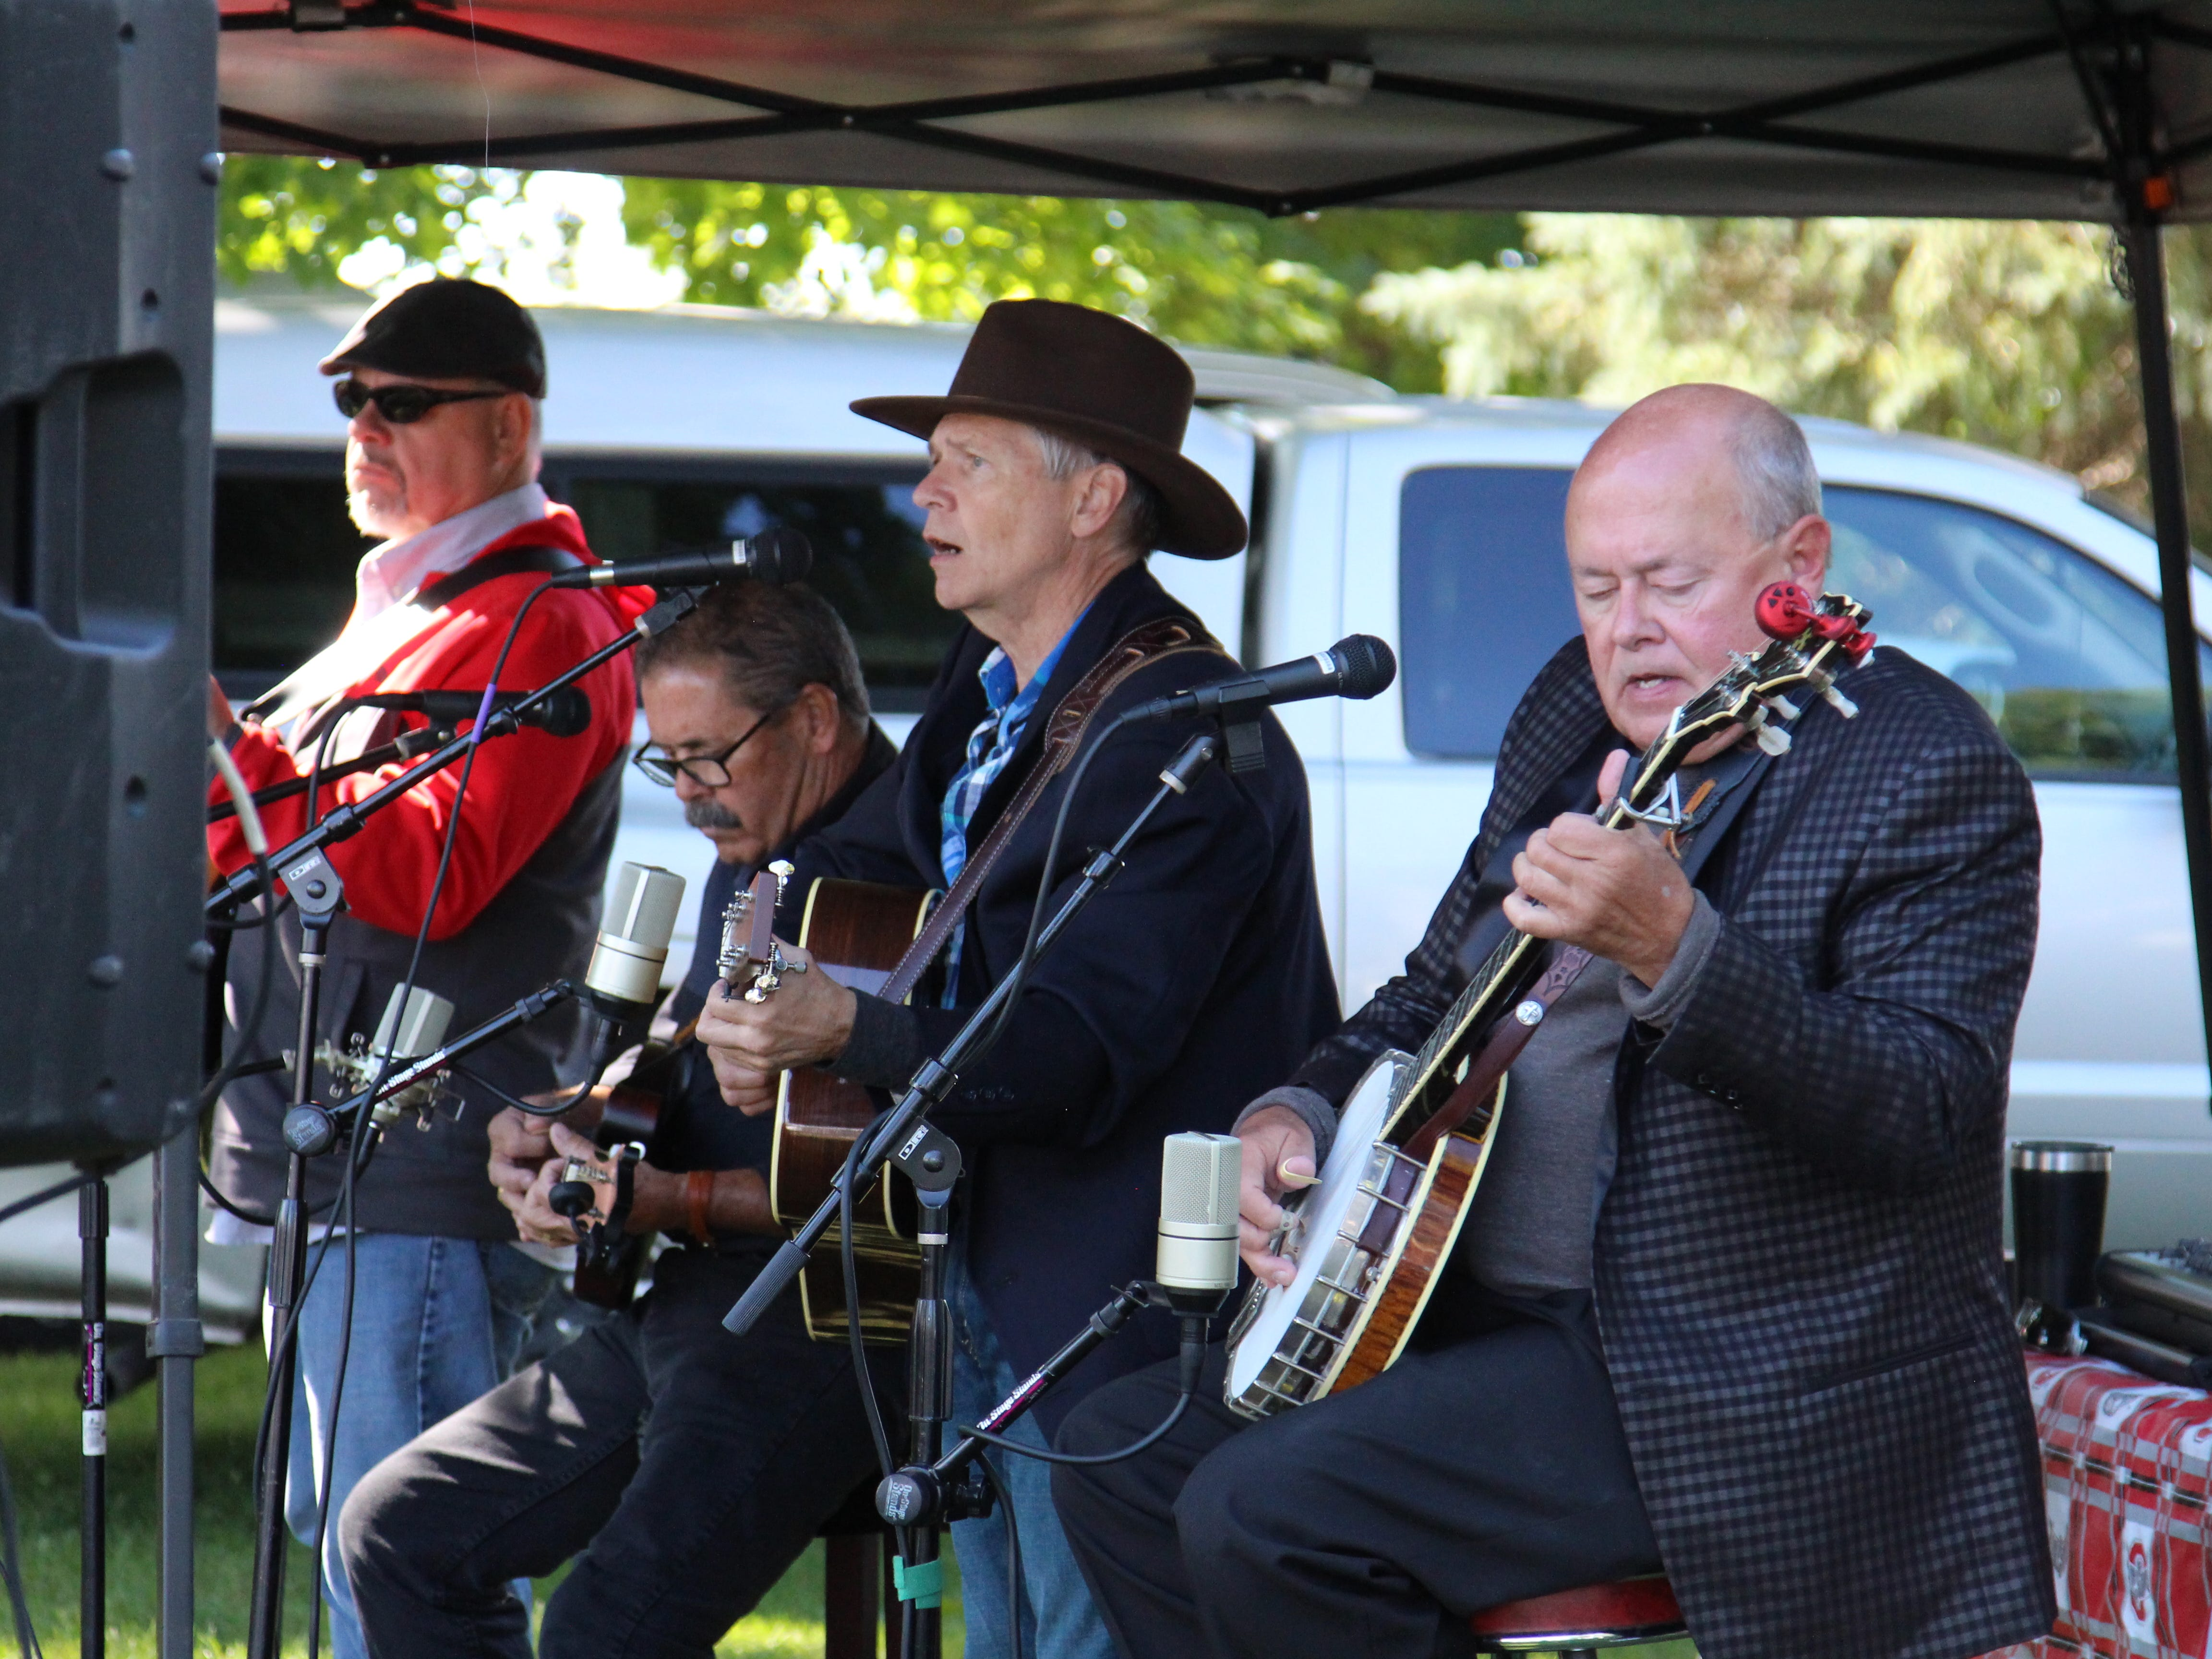 The local gospel/bluegrass band Grail plays at Applefest. The annual festival was Saturday at Lawrence Orchards.